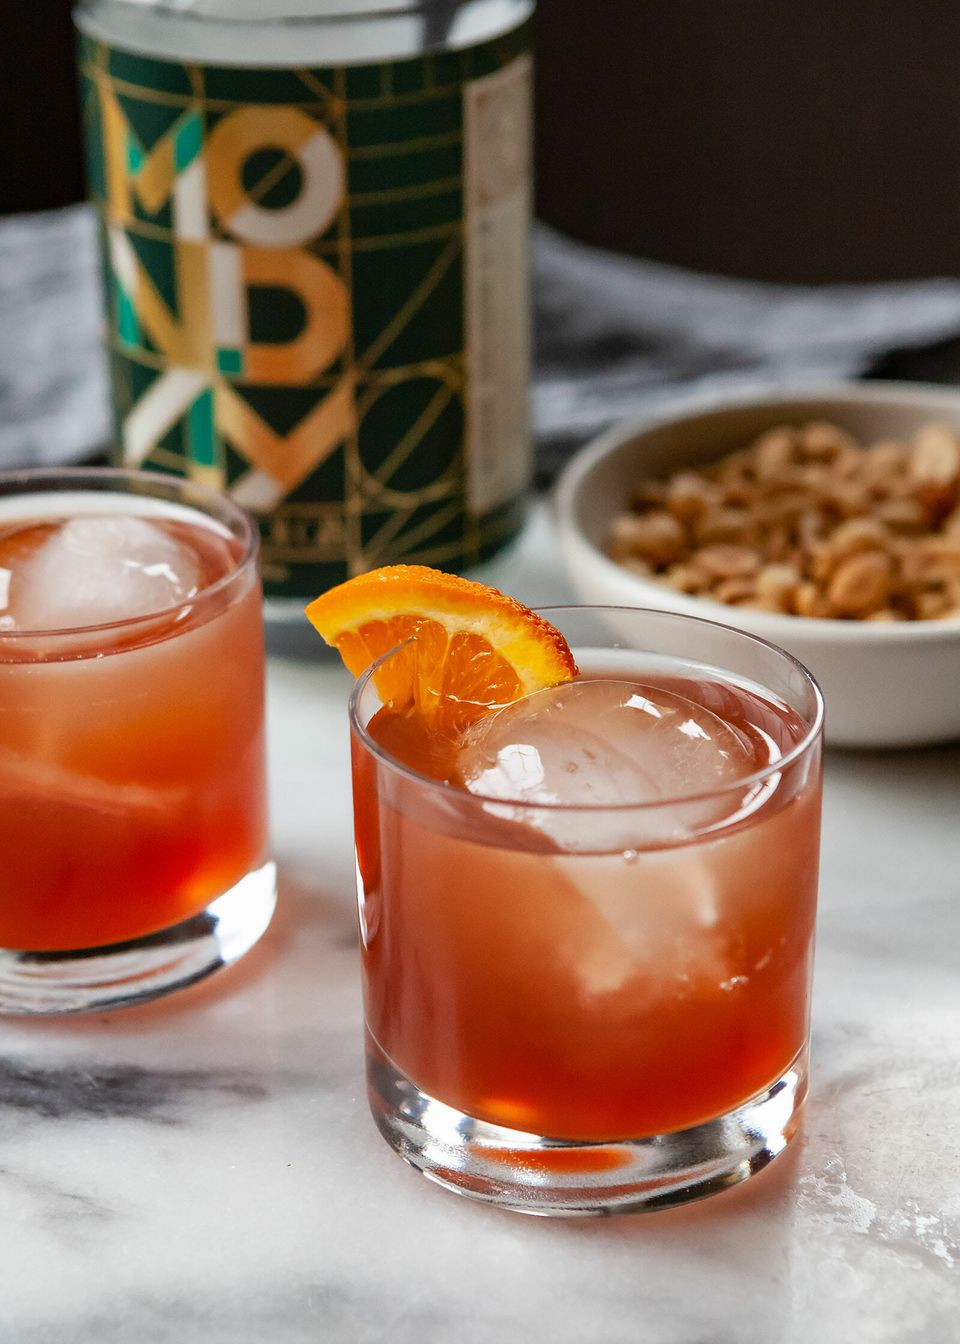 Non alcoholic negroni in a rocks glass with ice and an orange wedge. Bar nuts, and the non alcoholic gin are pictured behind the glass.